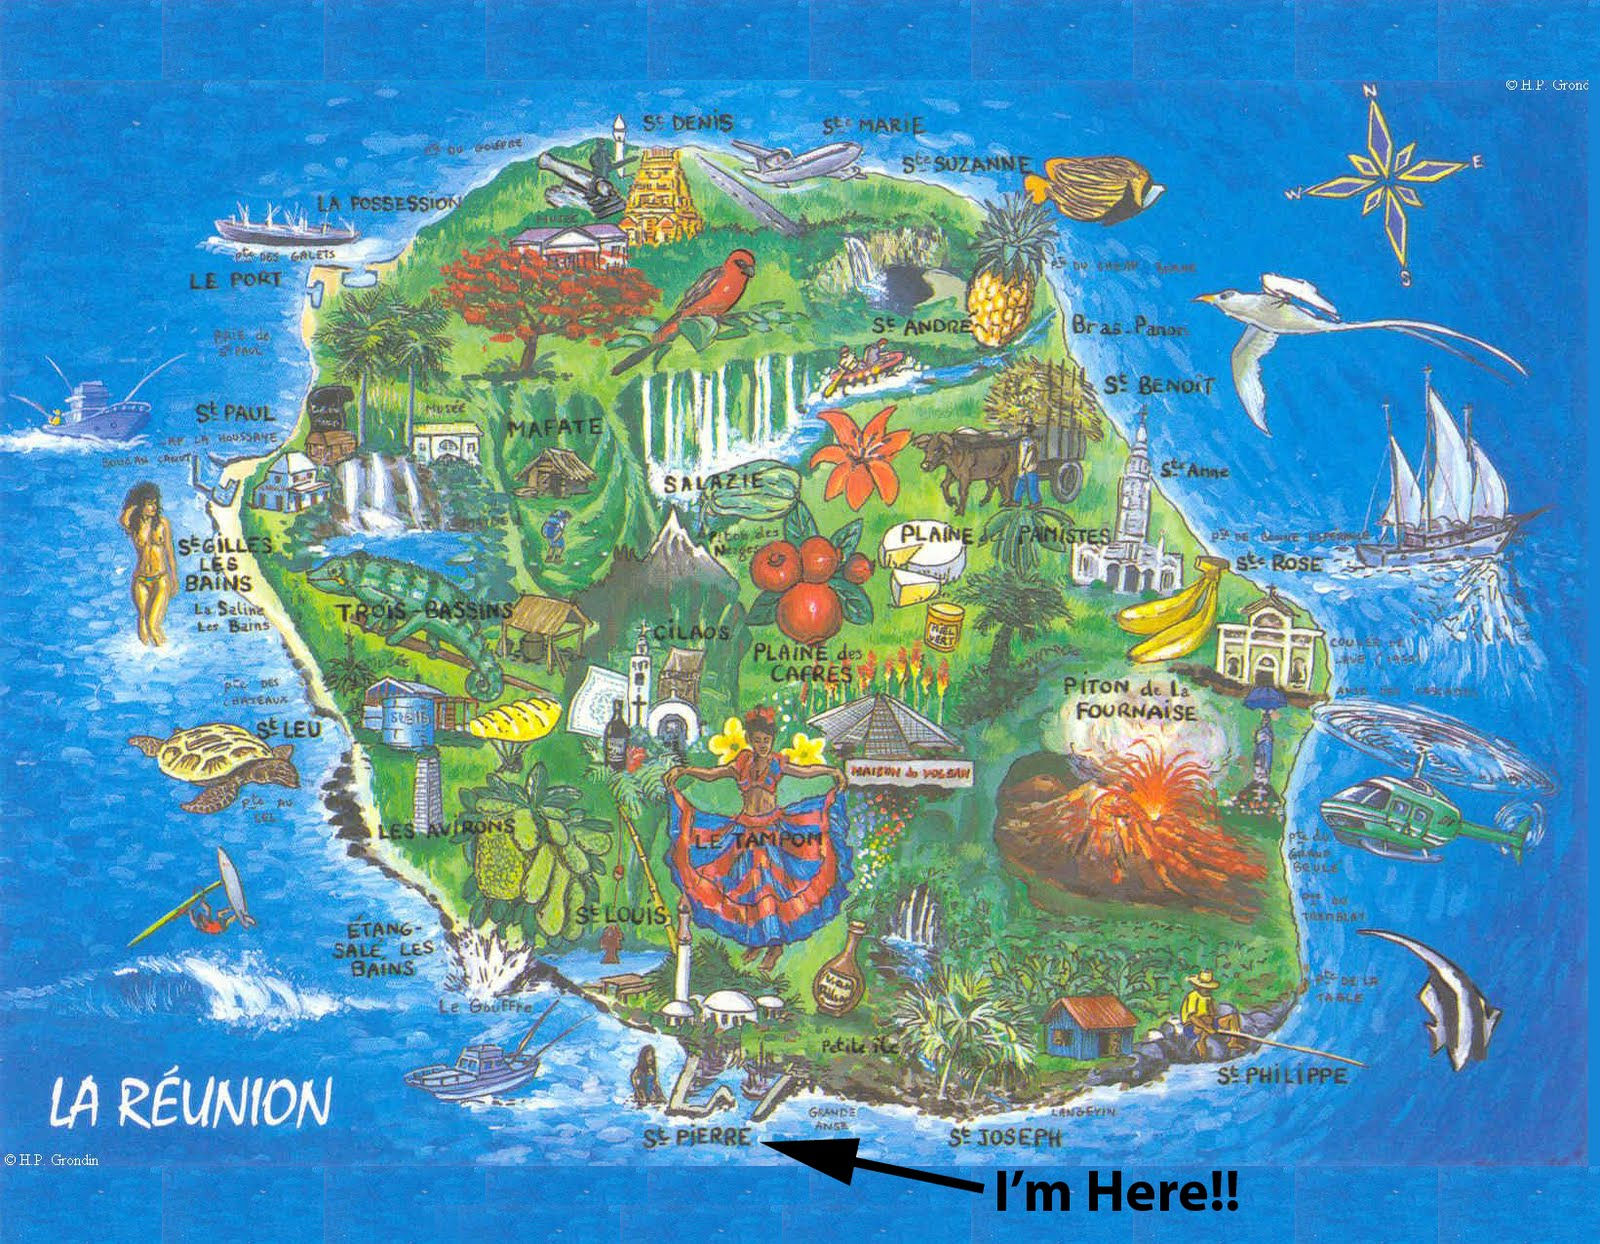 Shaan S Work Exchange And Travels Map Of La Reunion